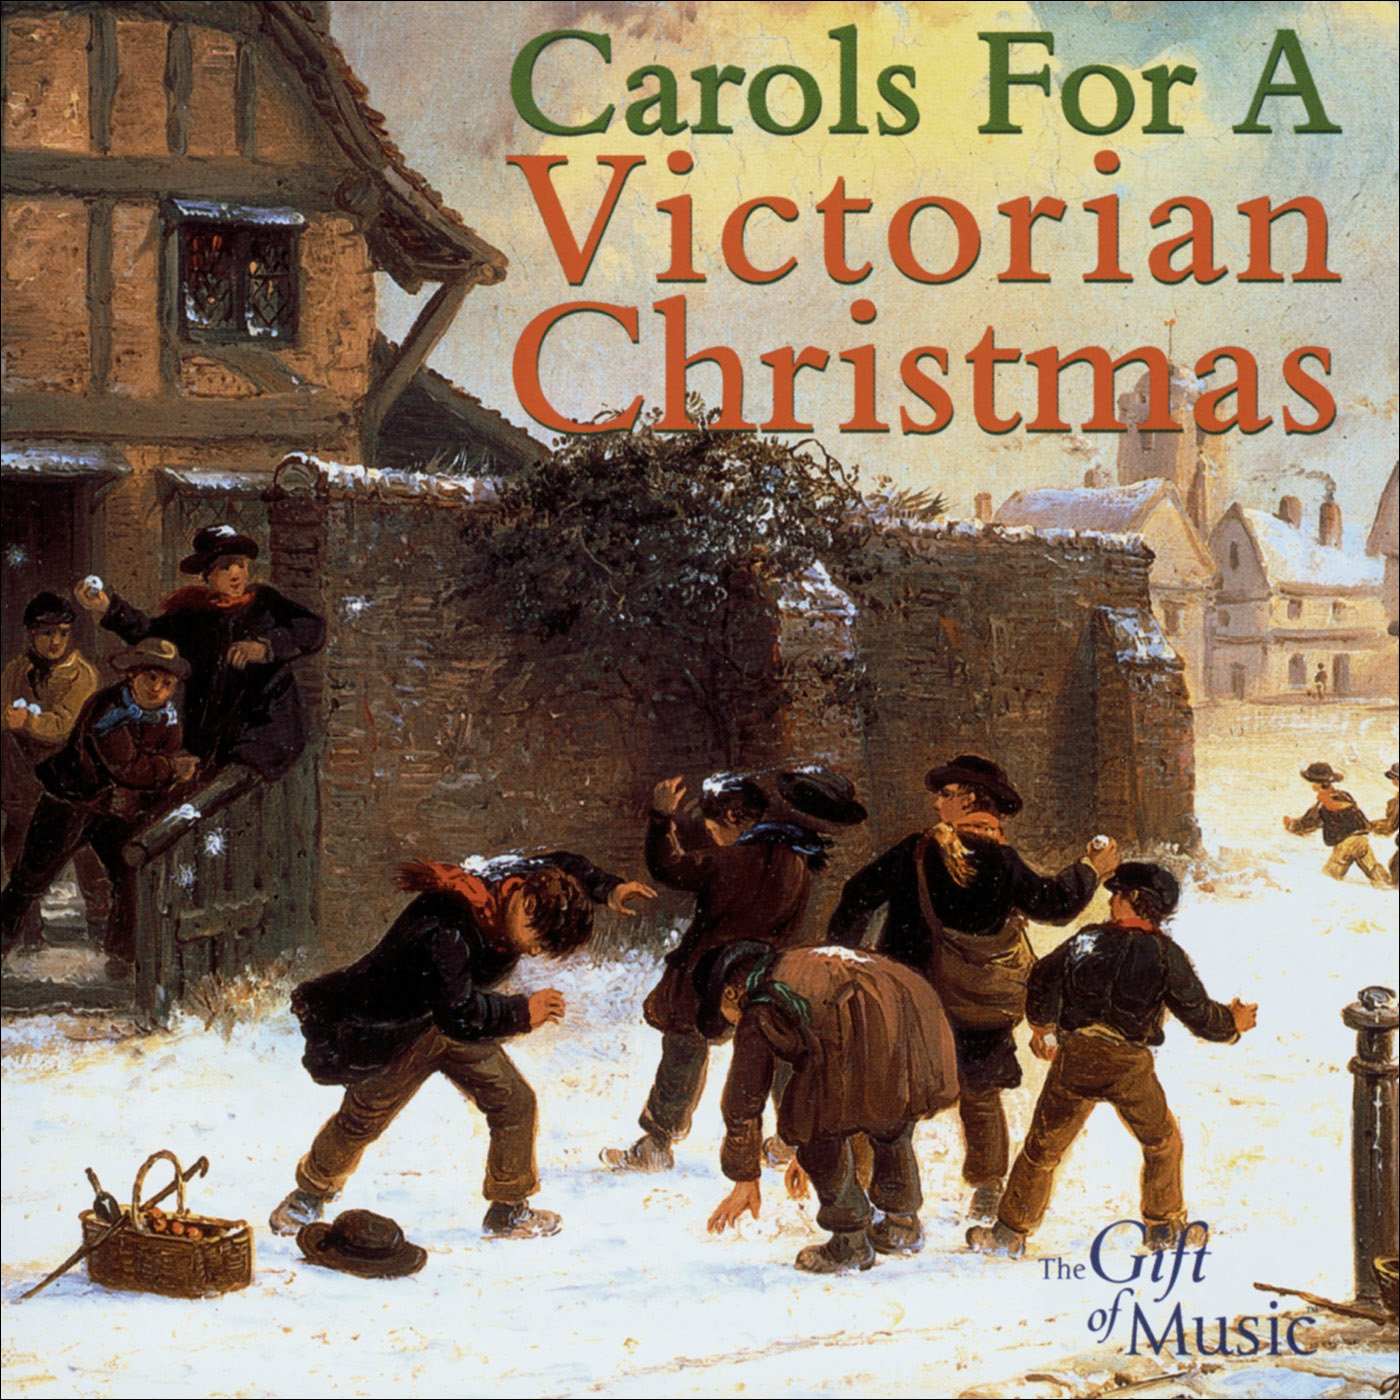 Carols for a Victorian Christmas by The Gift Of Music